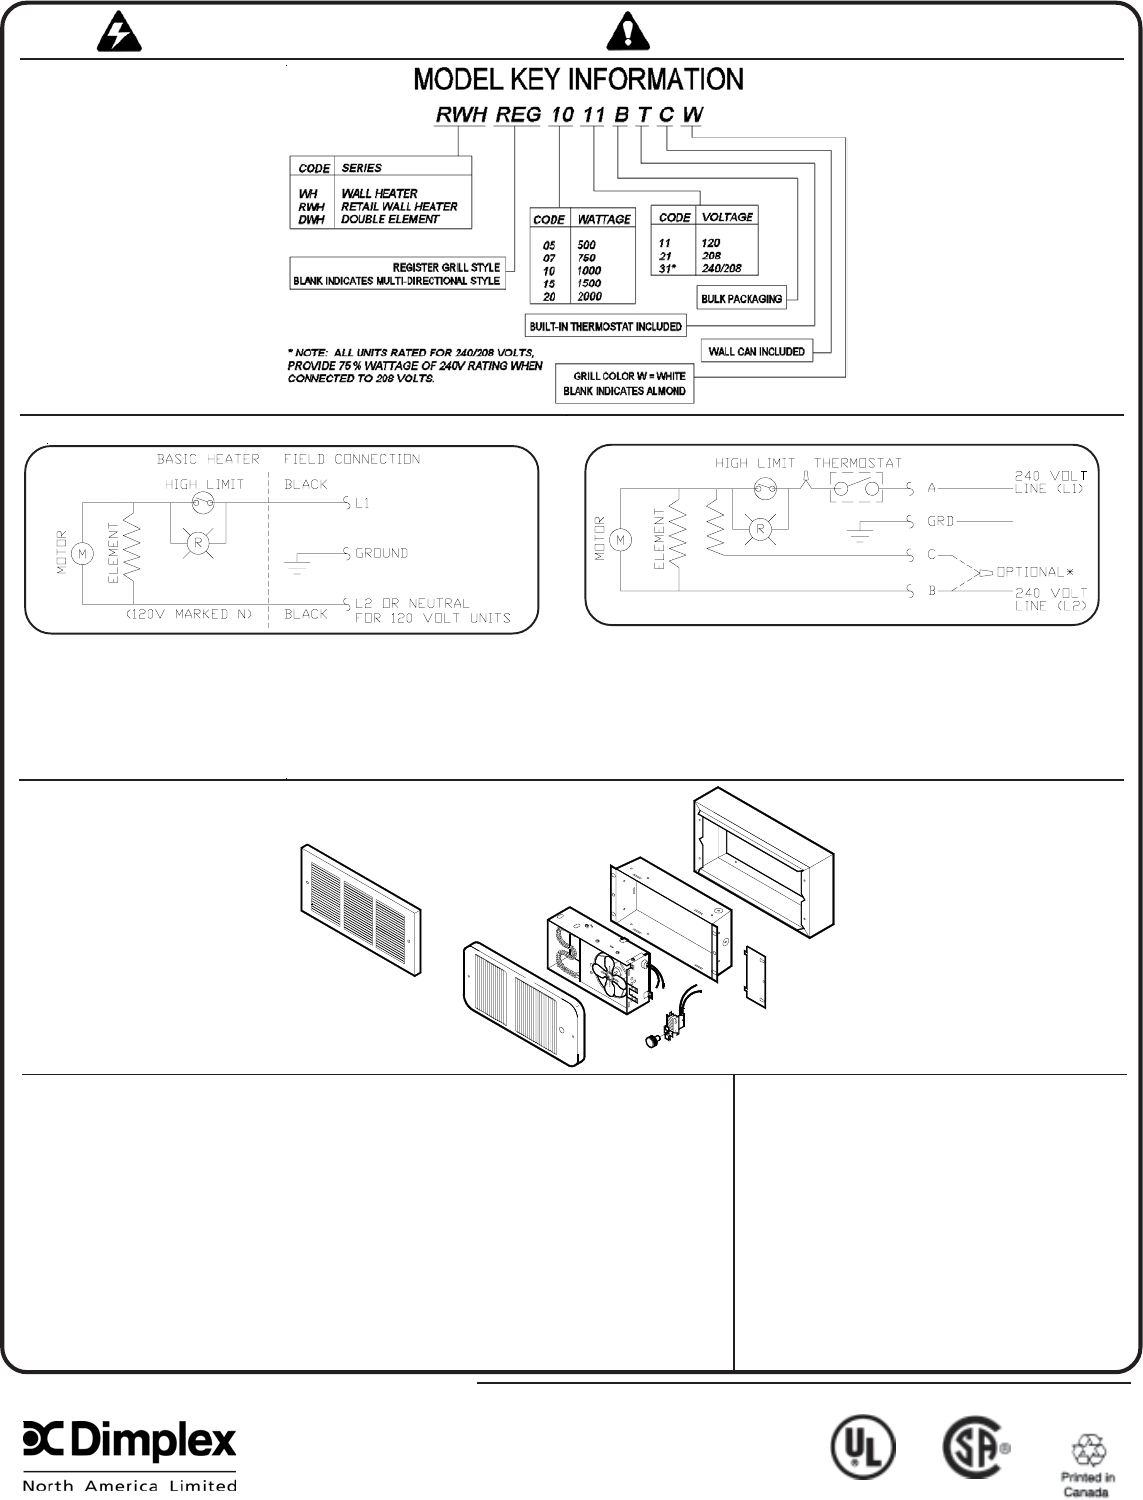 Dimplex Double Pole Thermostat Wiring Diagram from manualsdump.com